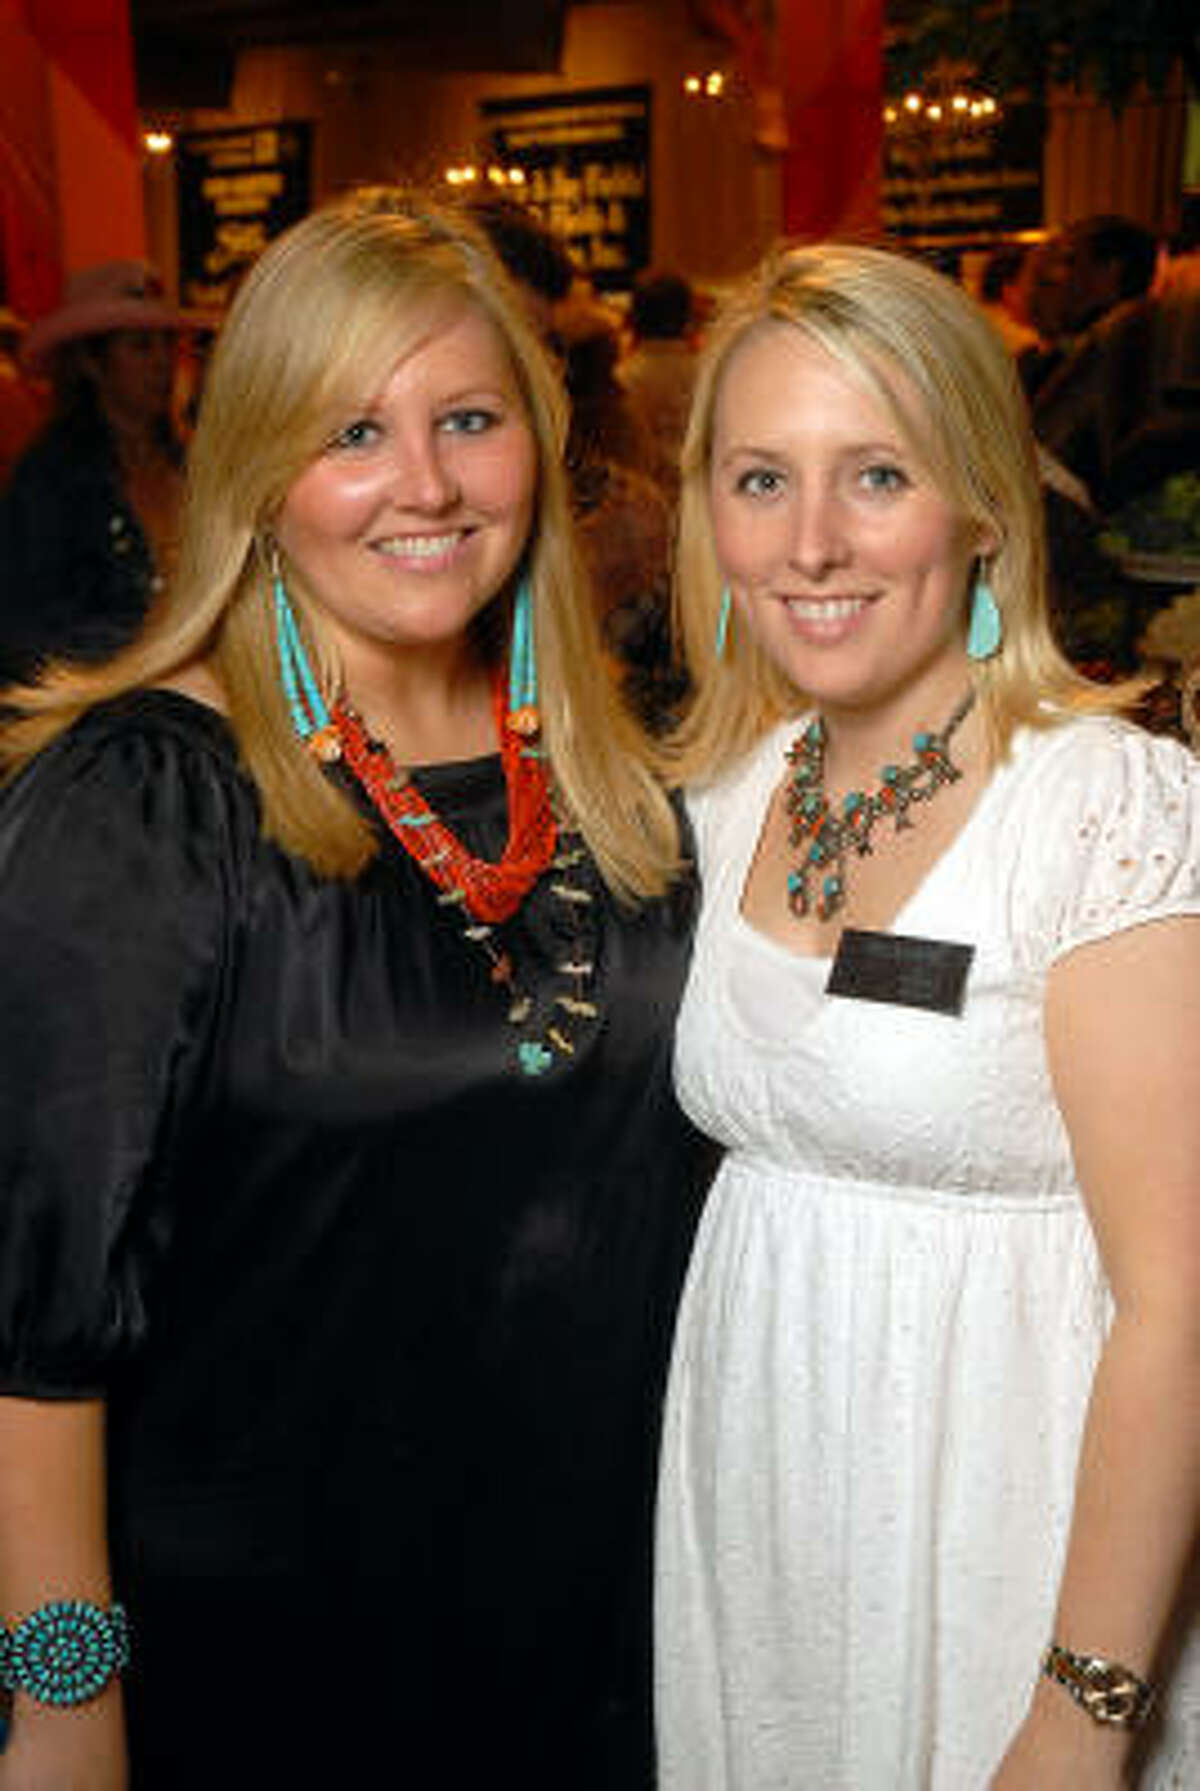 Meredith Riddle and Liz Anders